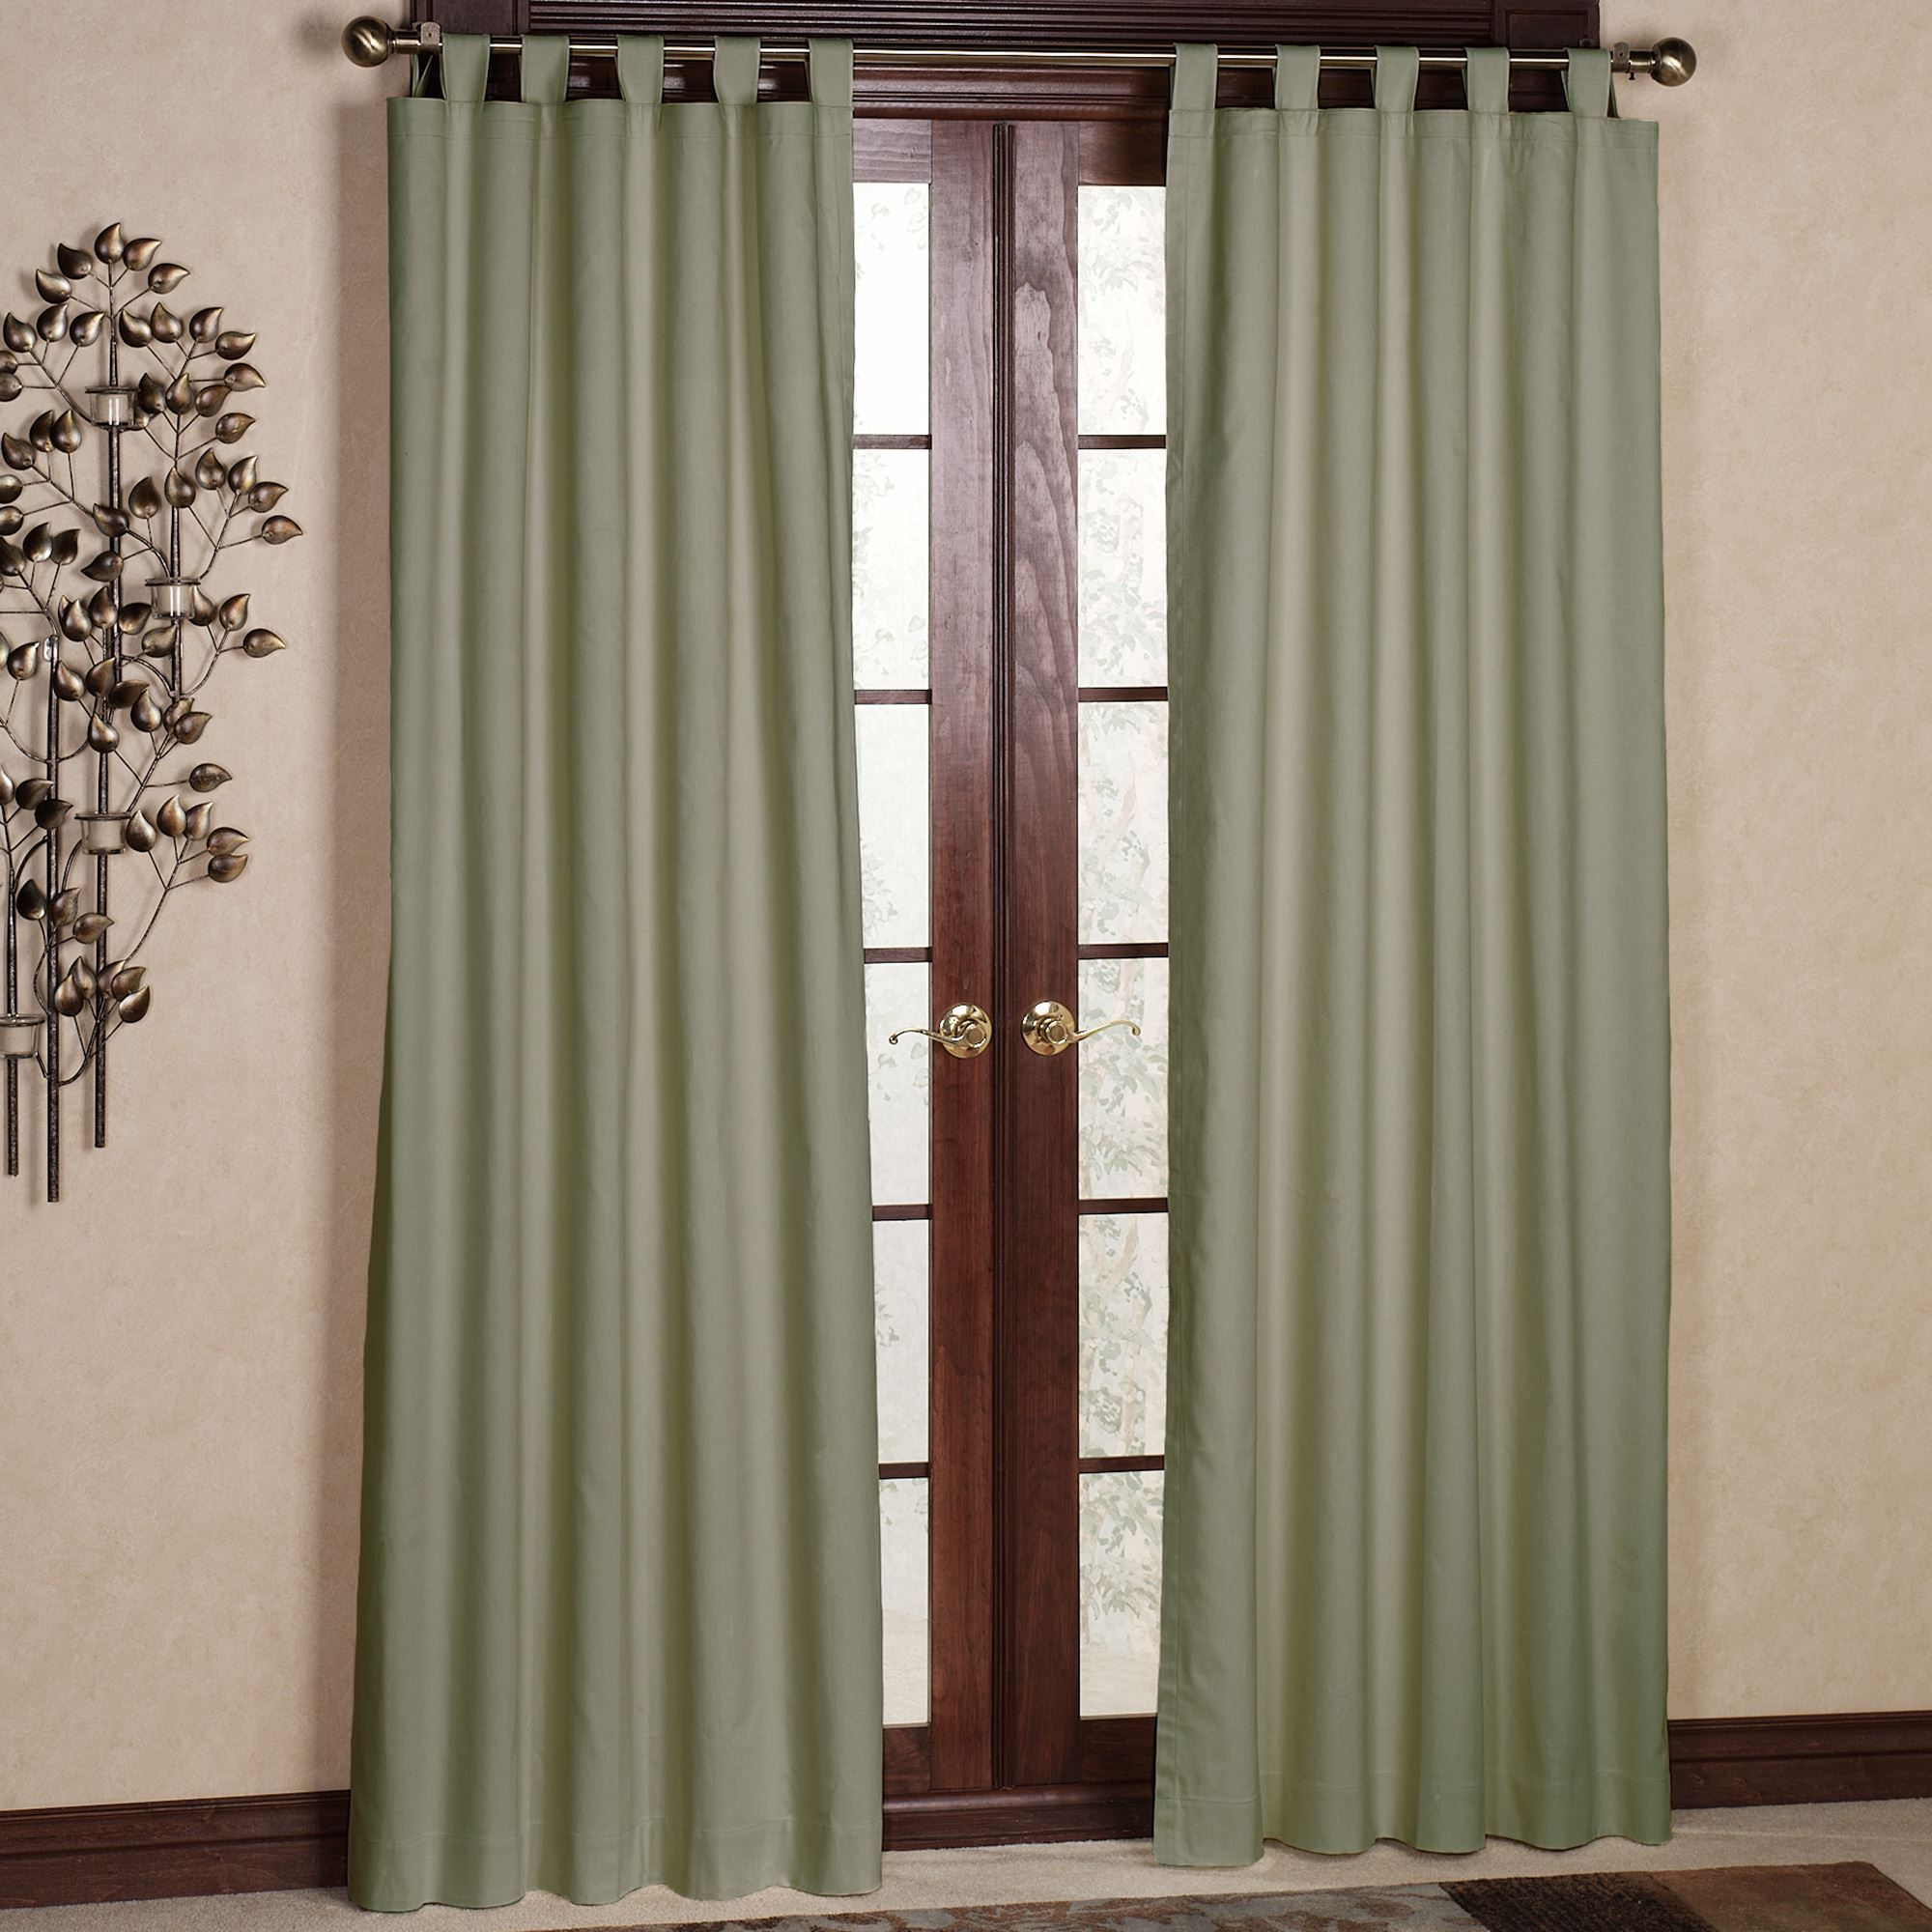 Compact tab top curtains weathermate solid tab curtain pair dcokyux